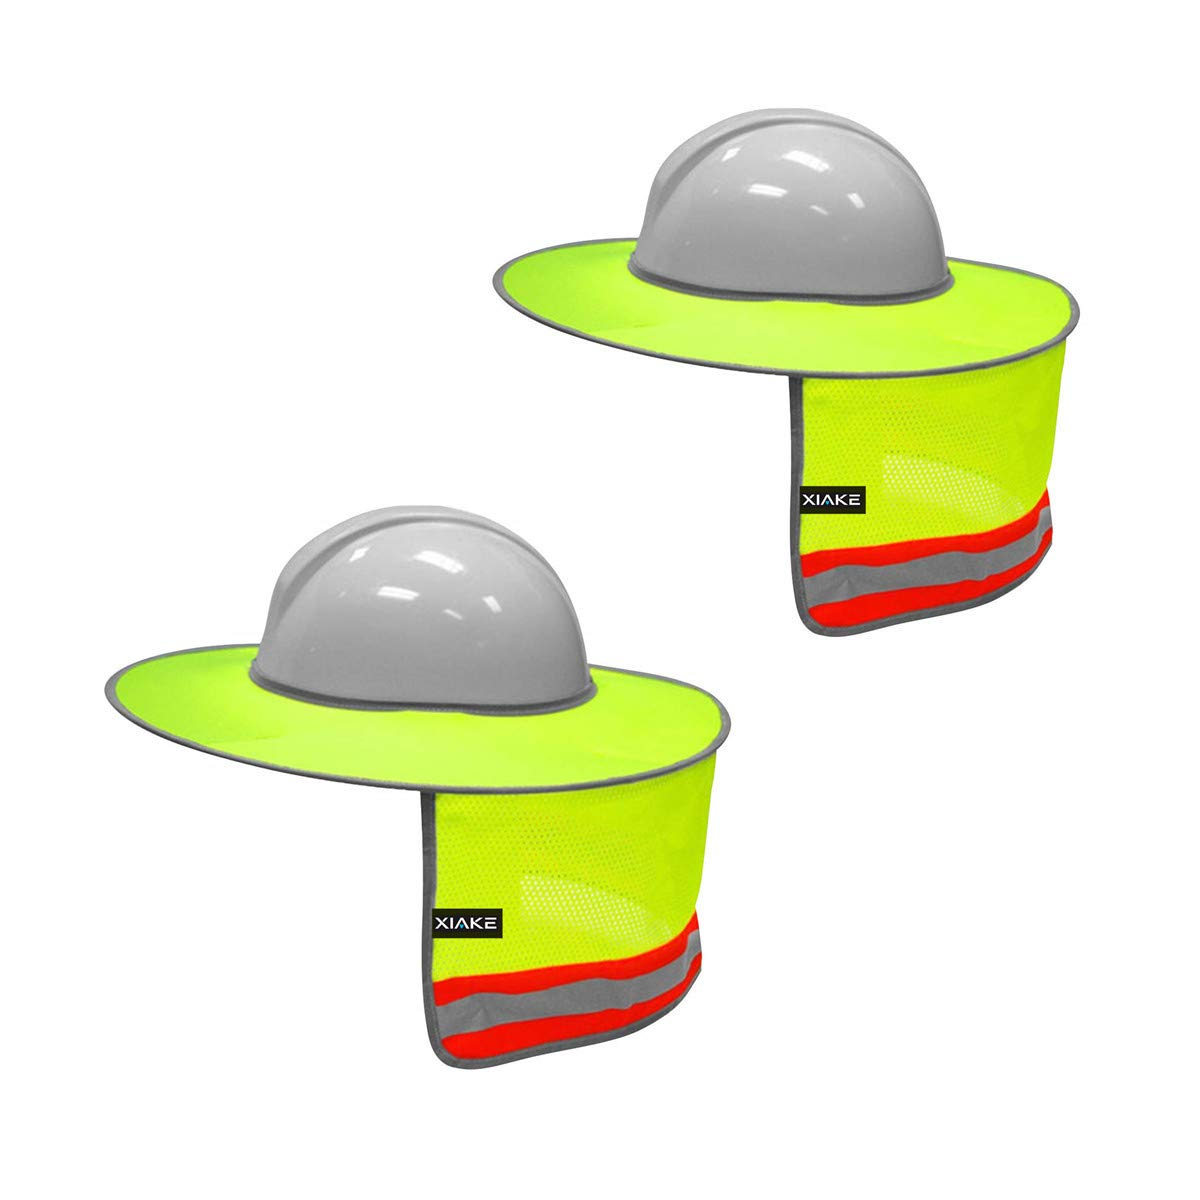 XIAKE 2 Pack Hard Hat Sun Shield Full Brim Mesh Neck Sunshade with Reflective Strips,High Visibility Yellow